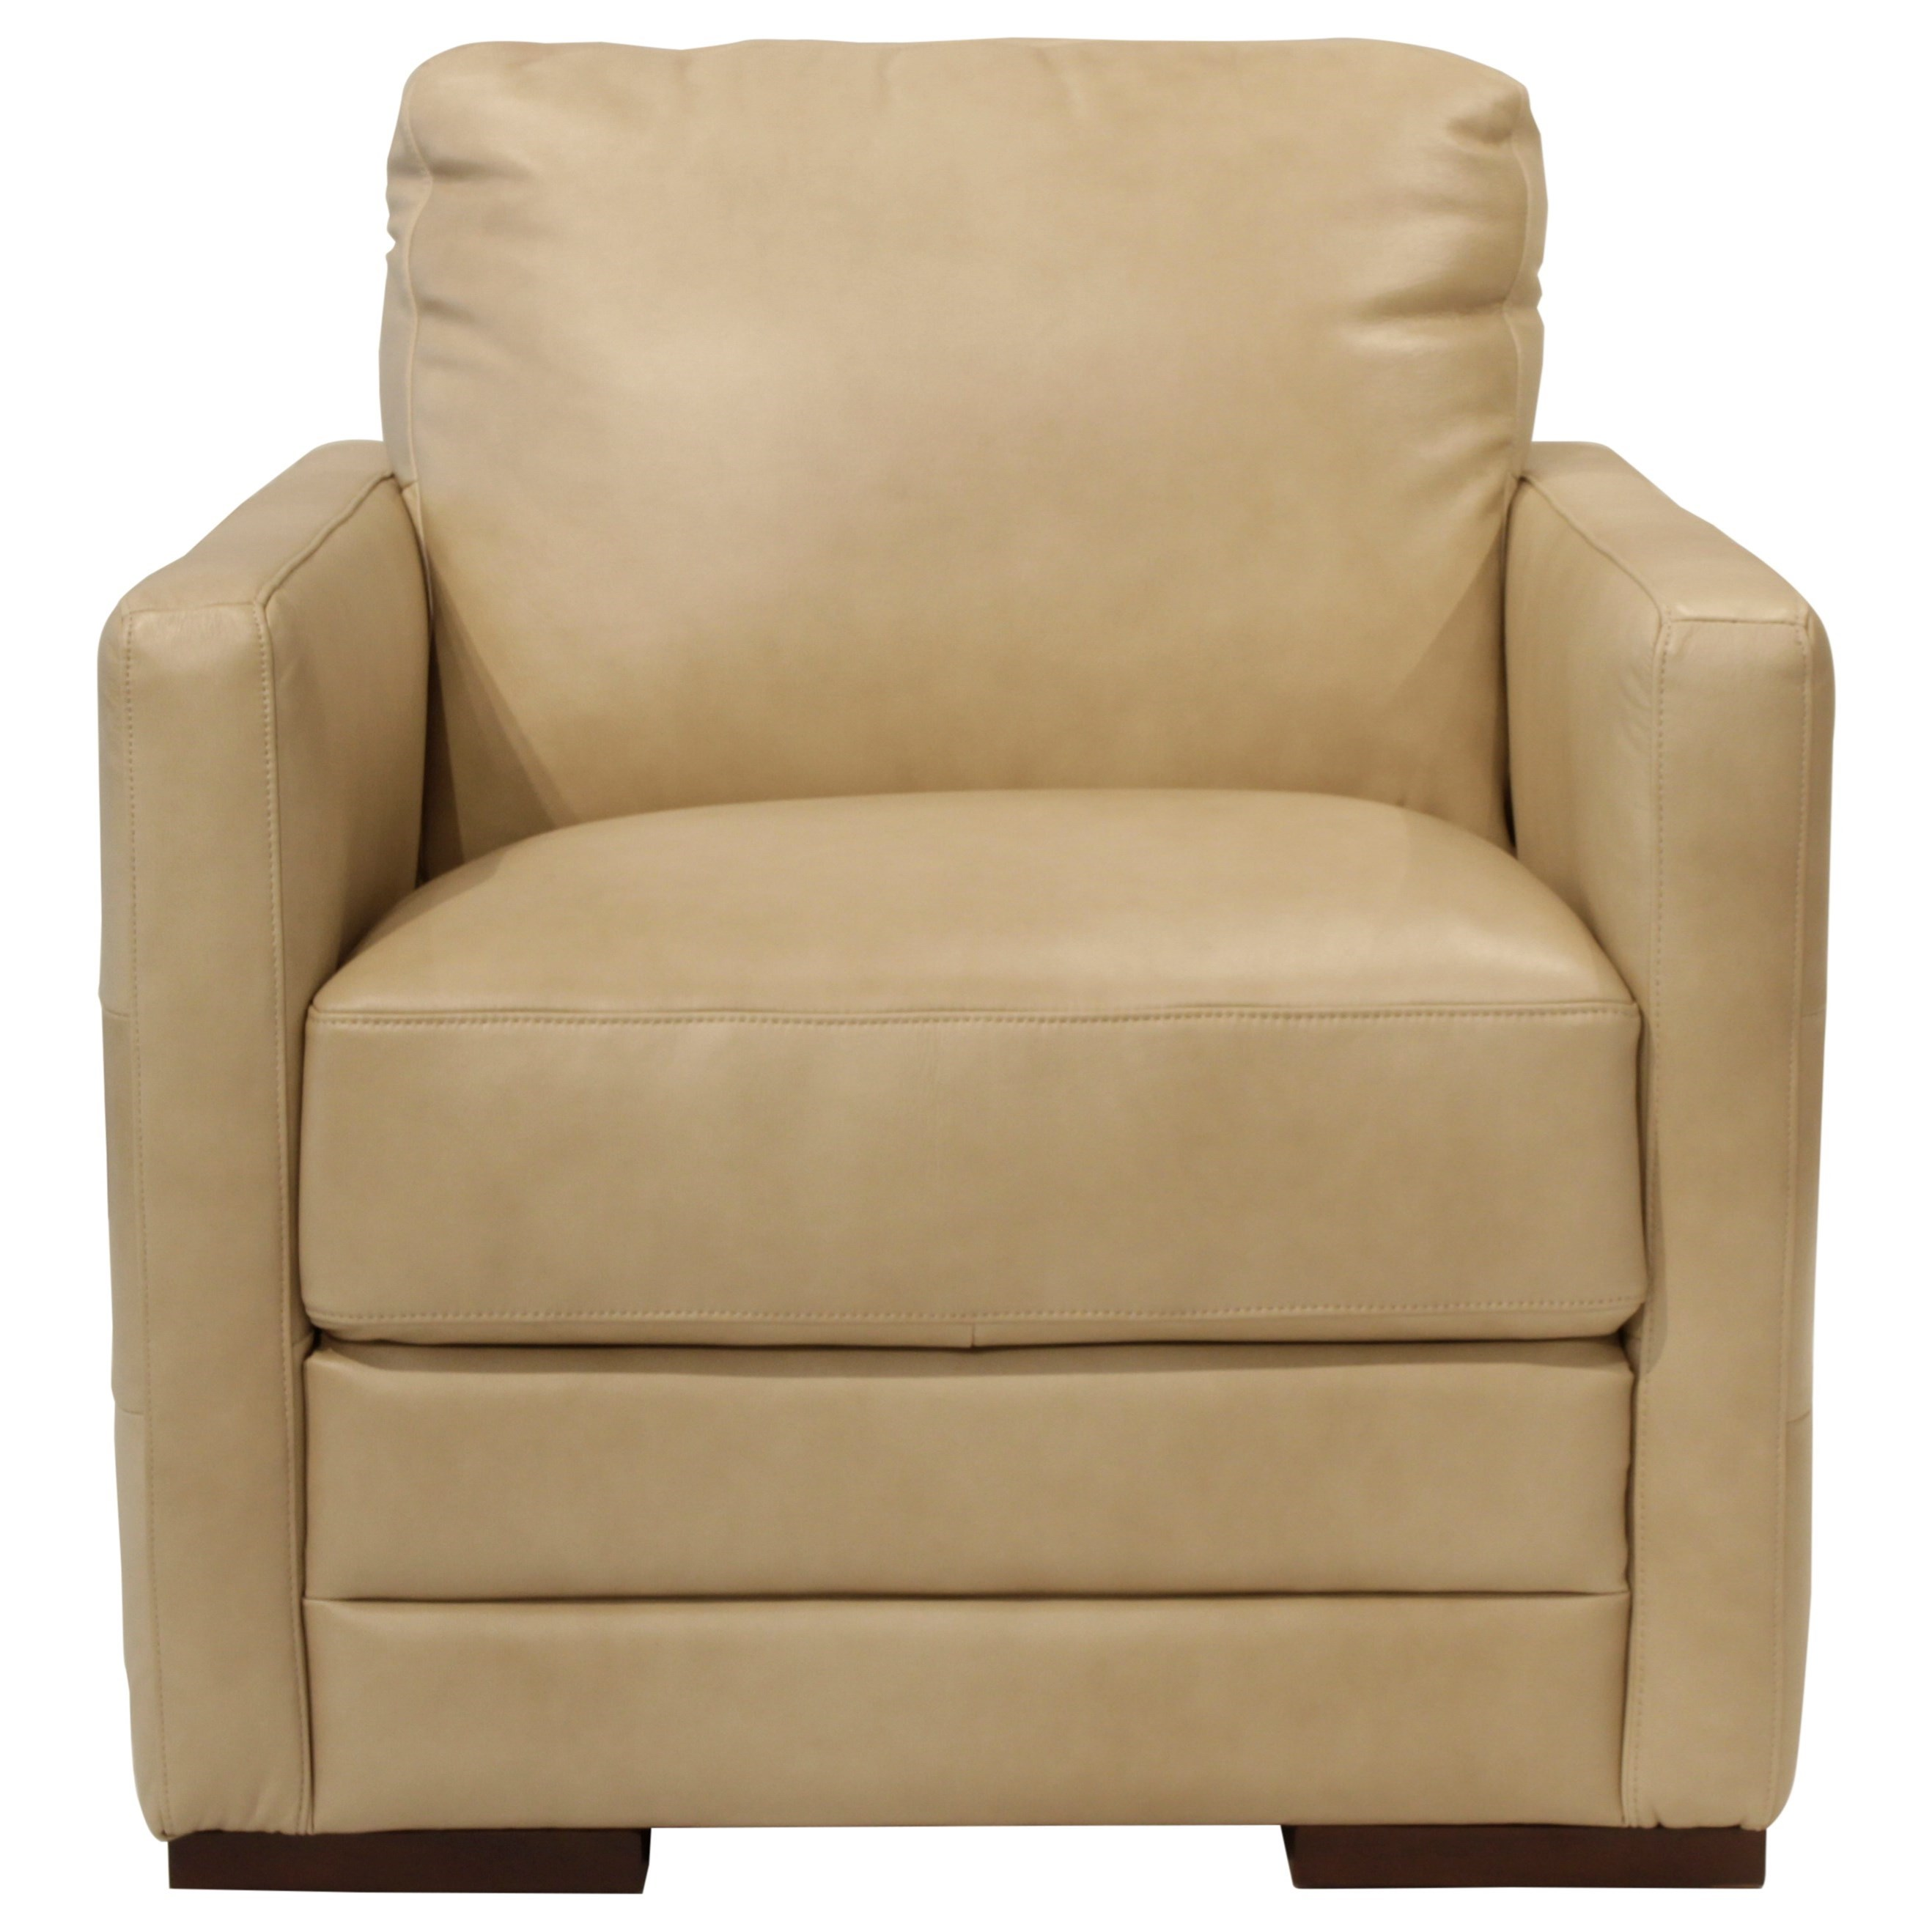 Futura Leather Monica Chair - Item Number: 10190-10-Pebble